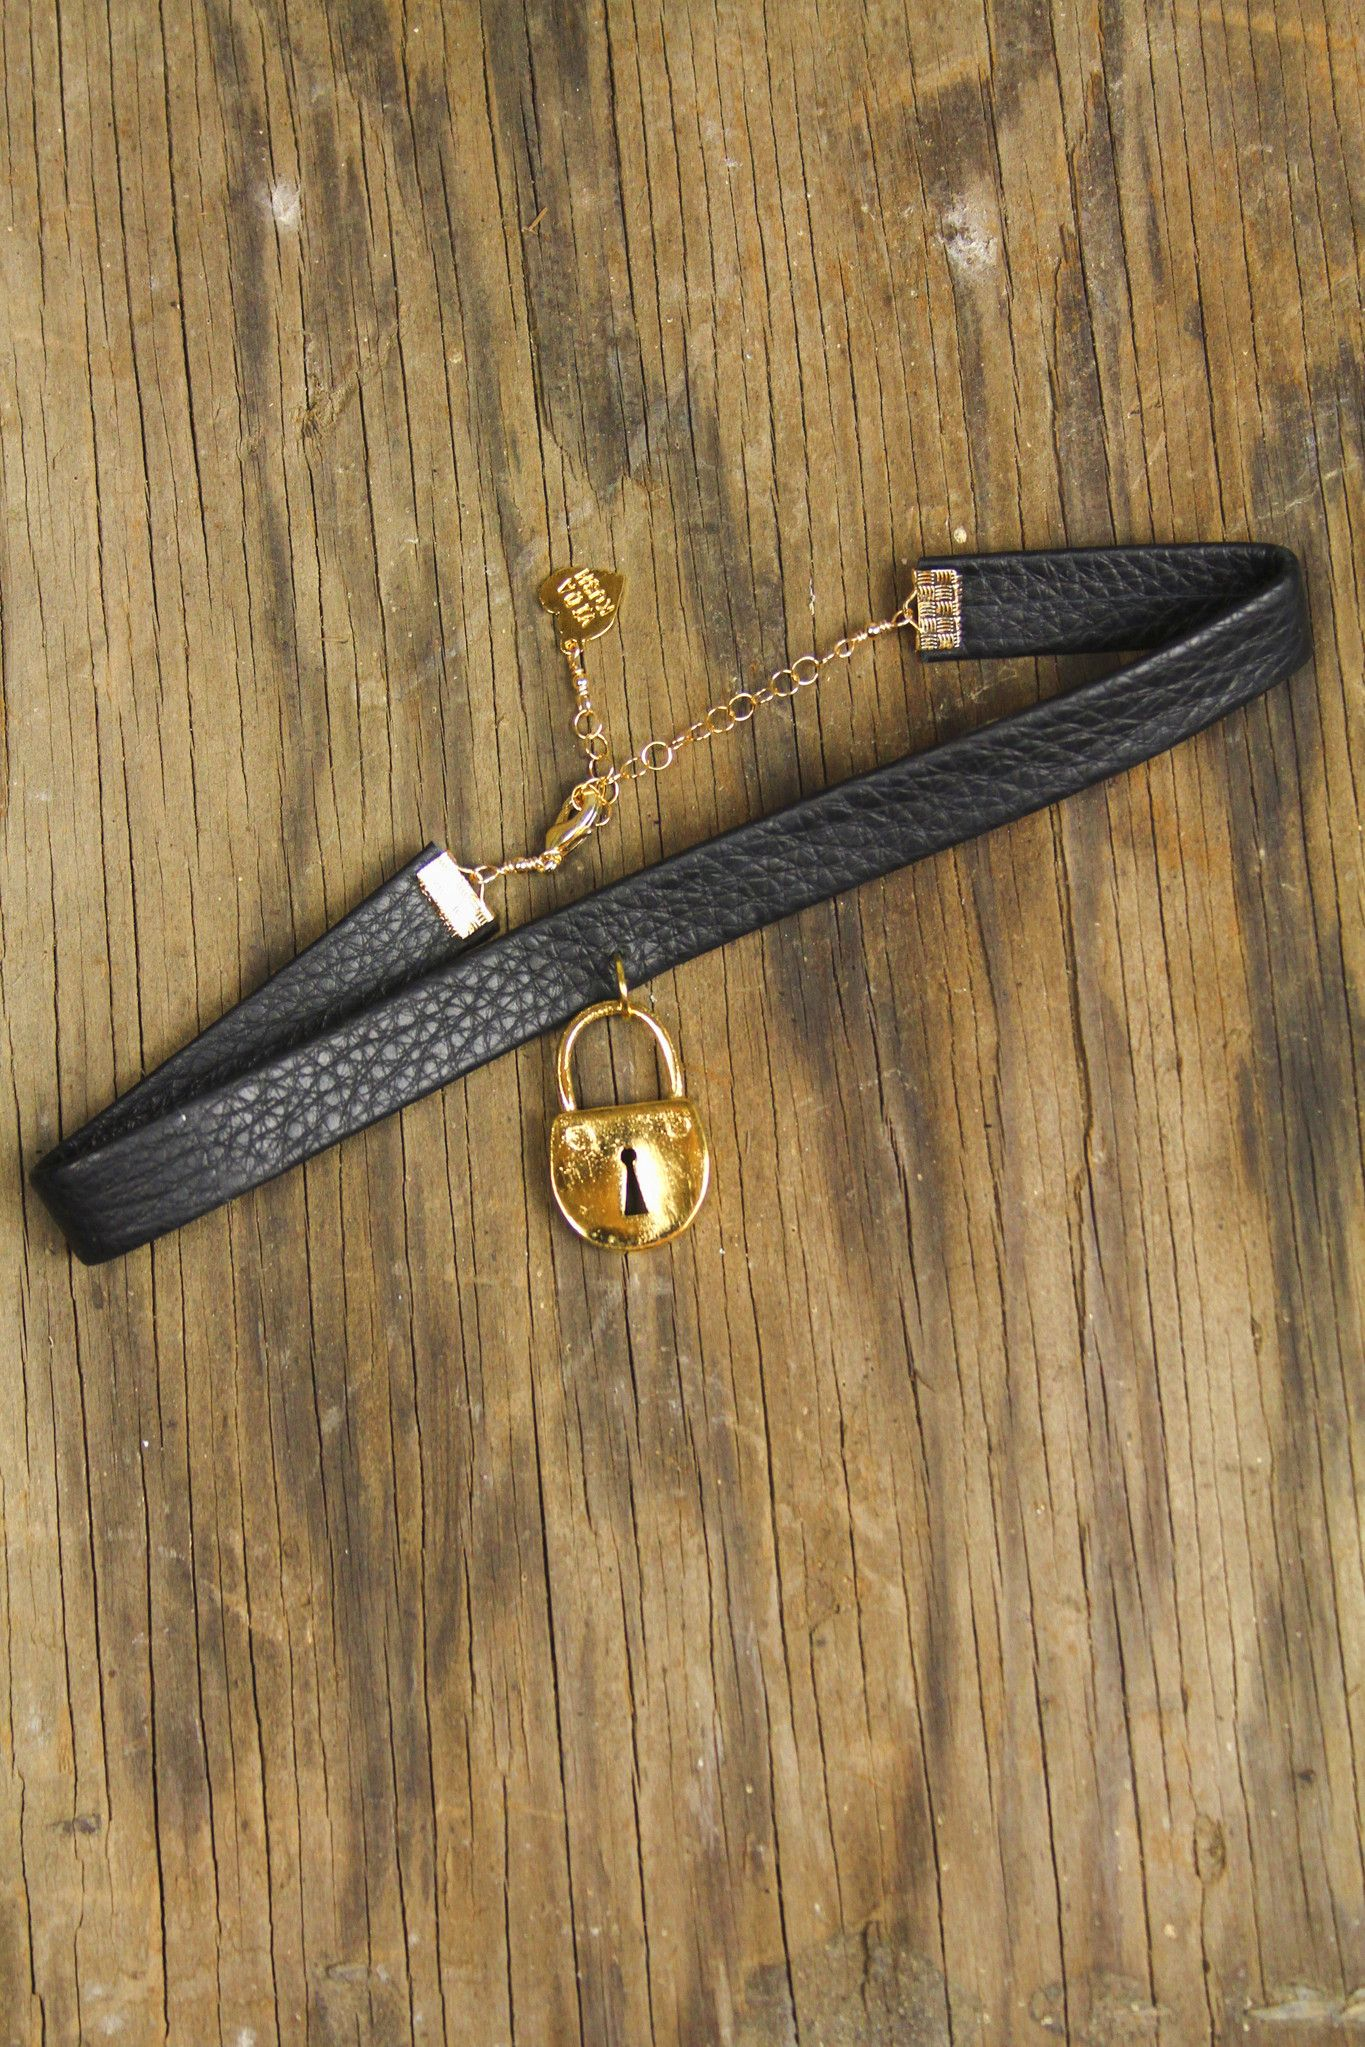 Design house jewelry - From La Based Design House Vidakush Our Edgy Choker Comes Wiht A Golden Lock